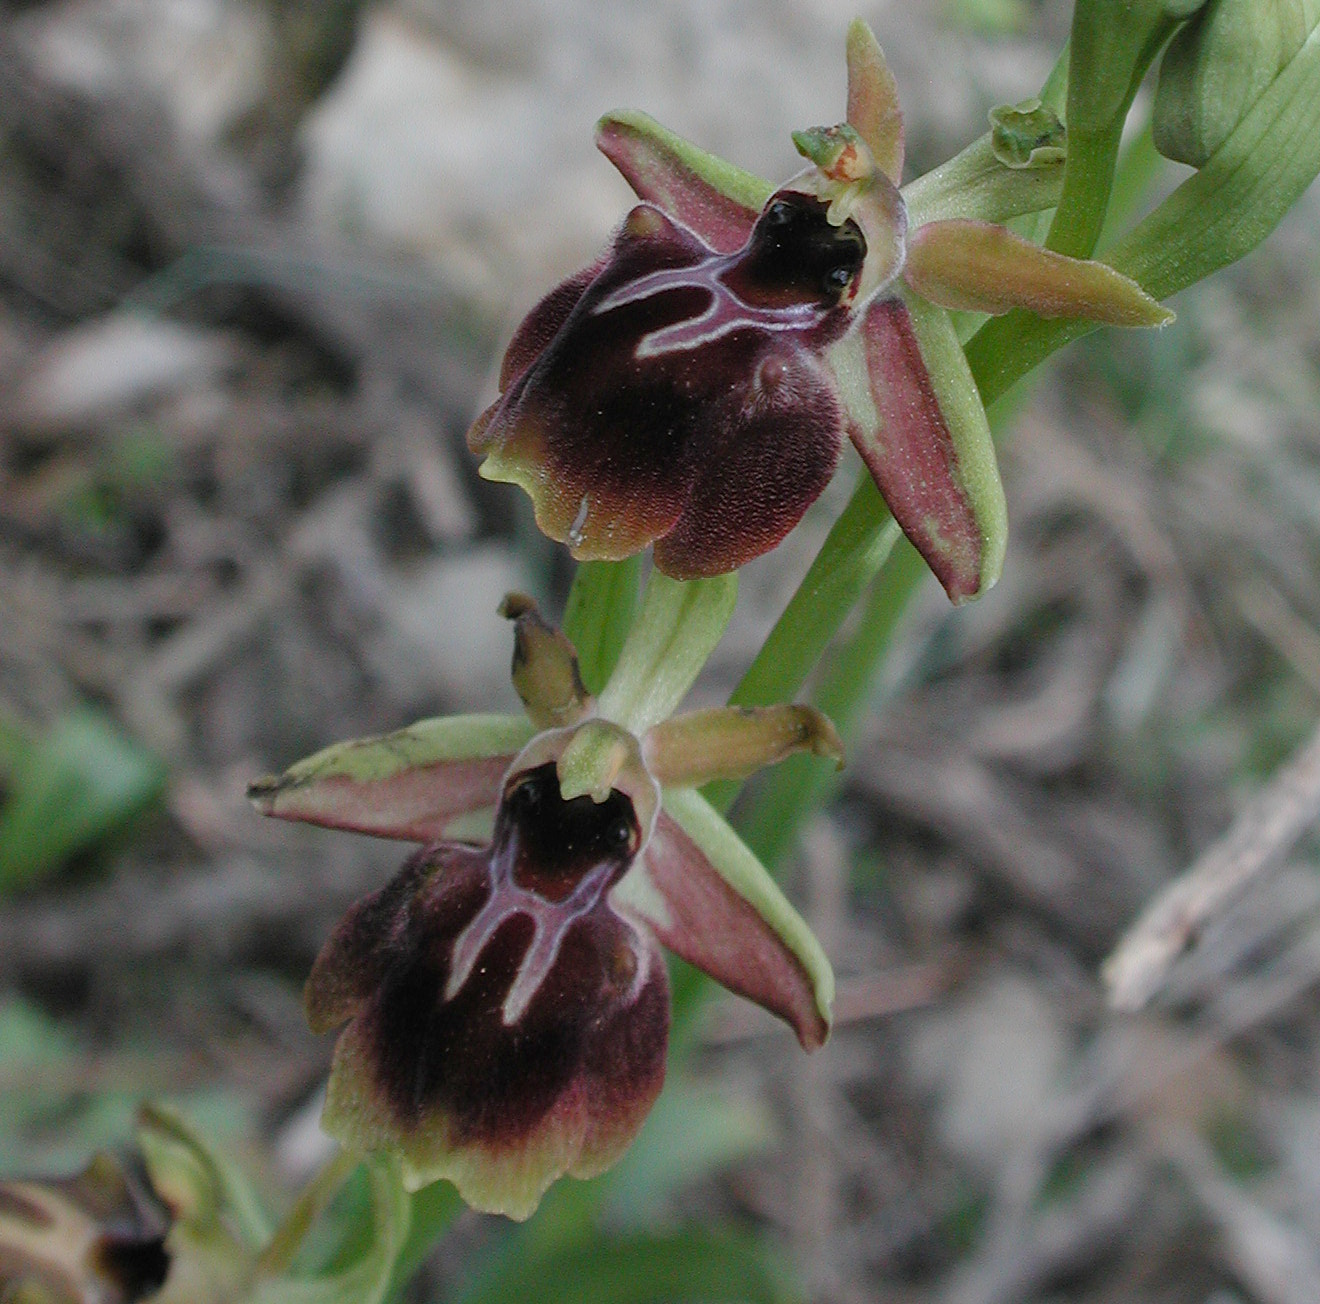 Ophrys aesculapiiformis